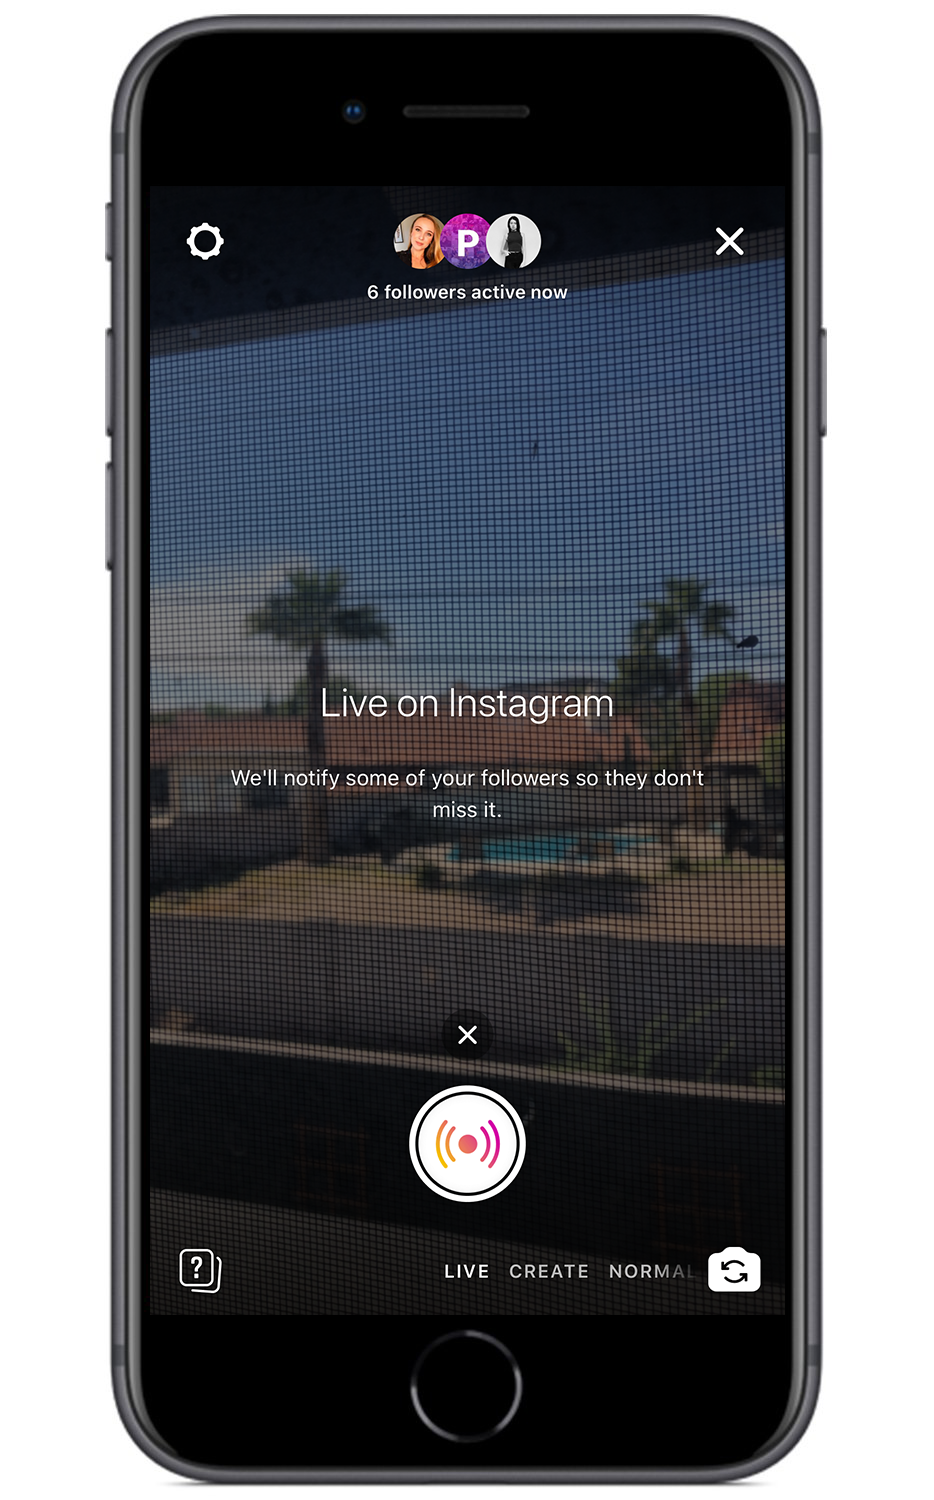 Instagram Live: Why You Should Go Live – Tips and Ideas